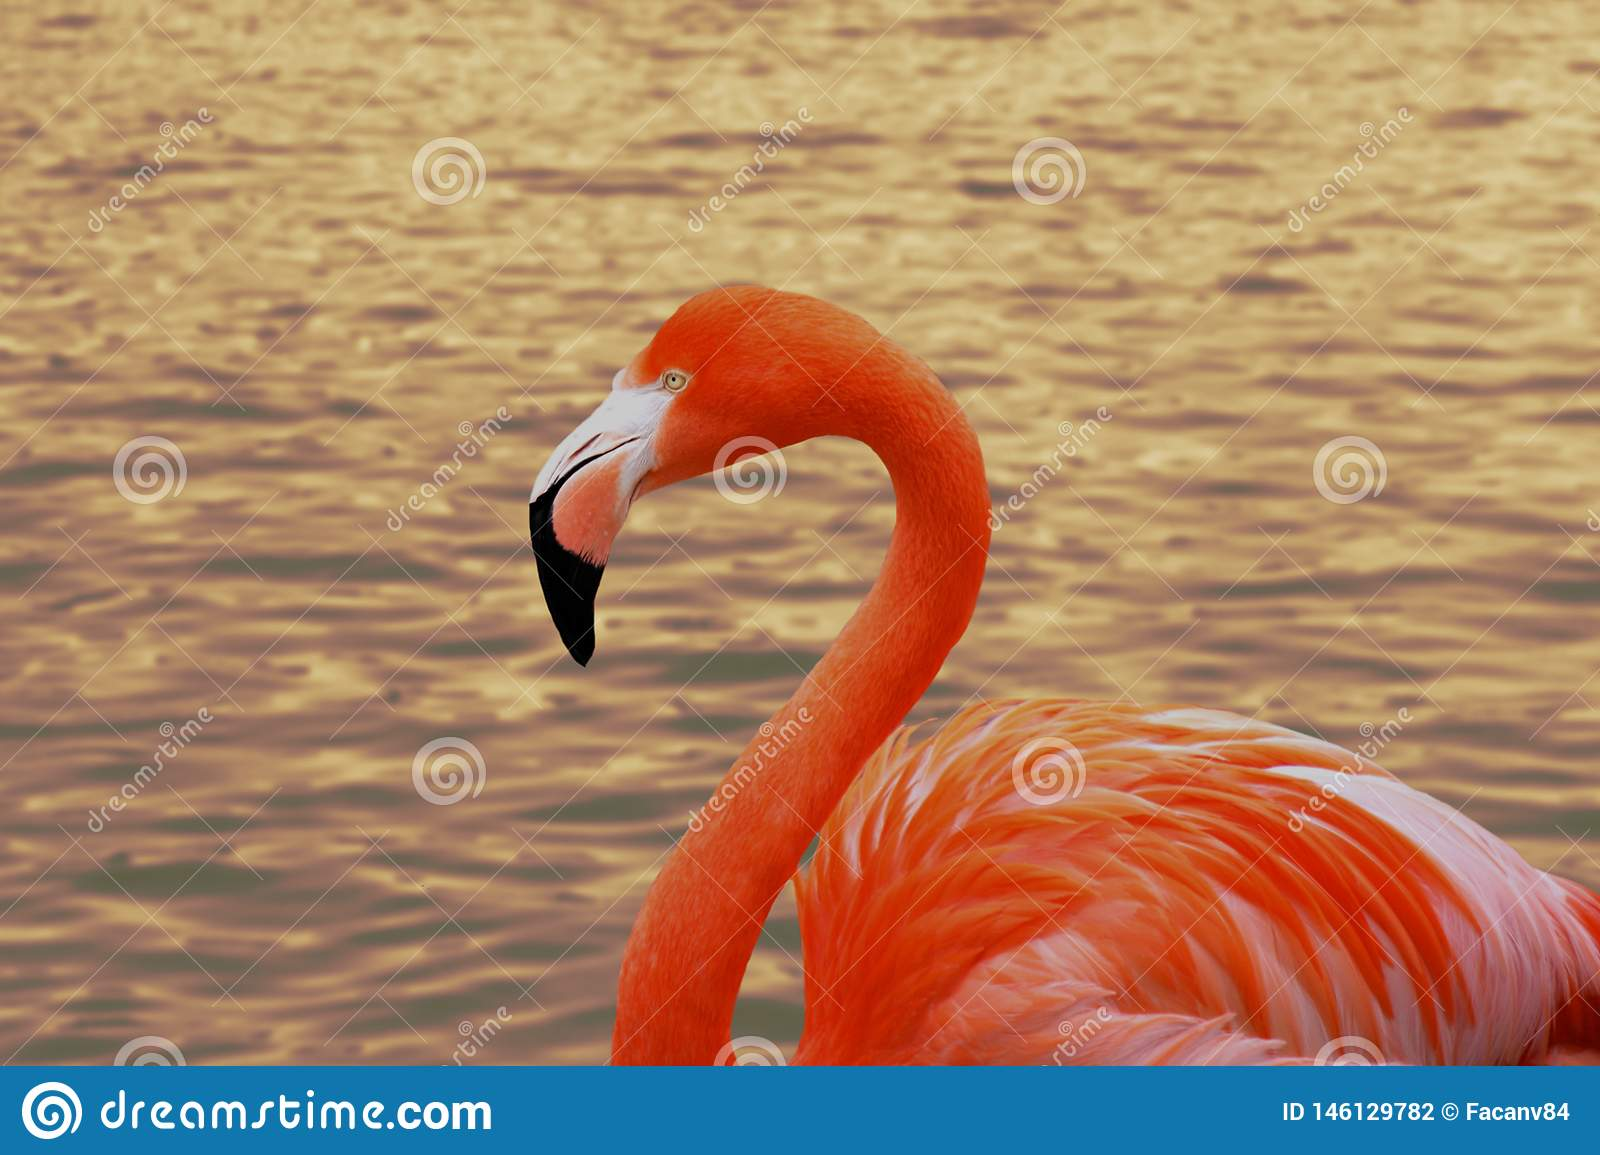 Portrait of the flamingo up close. The bird enjoys swimming on the water. A wonderful reflection of the sunset in the background.